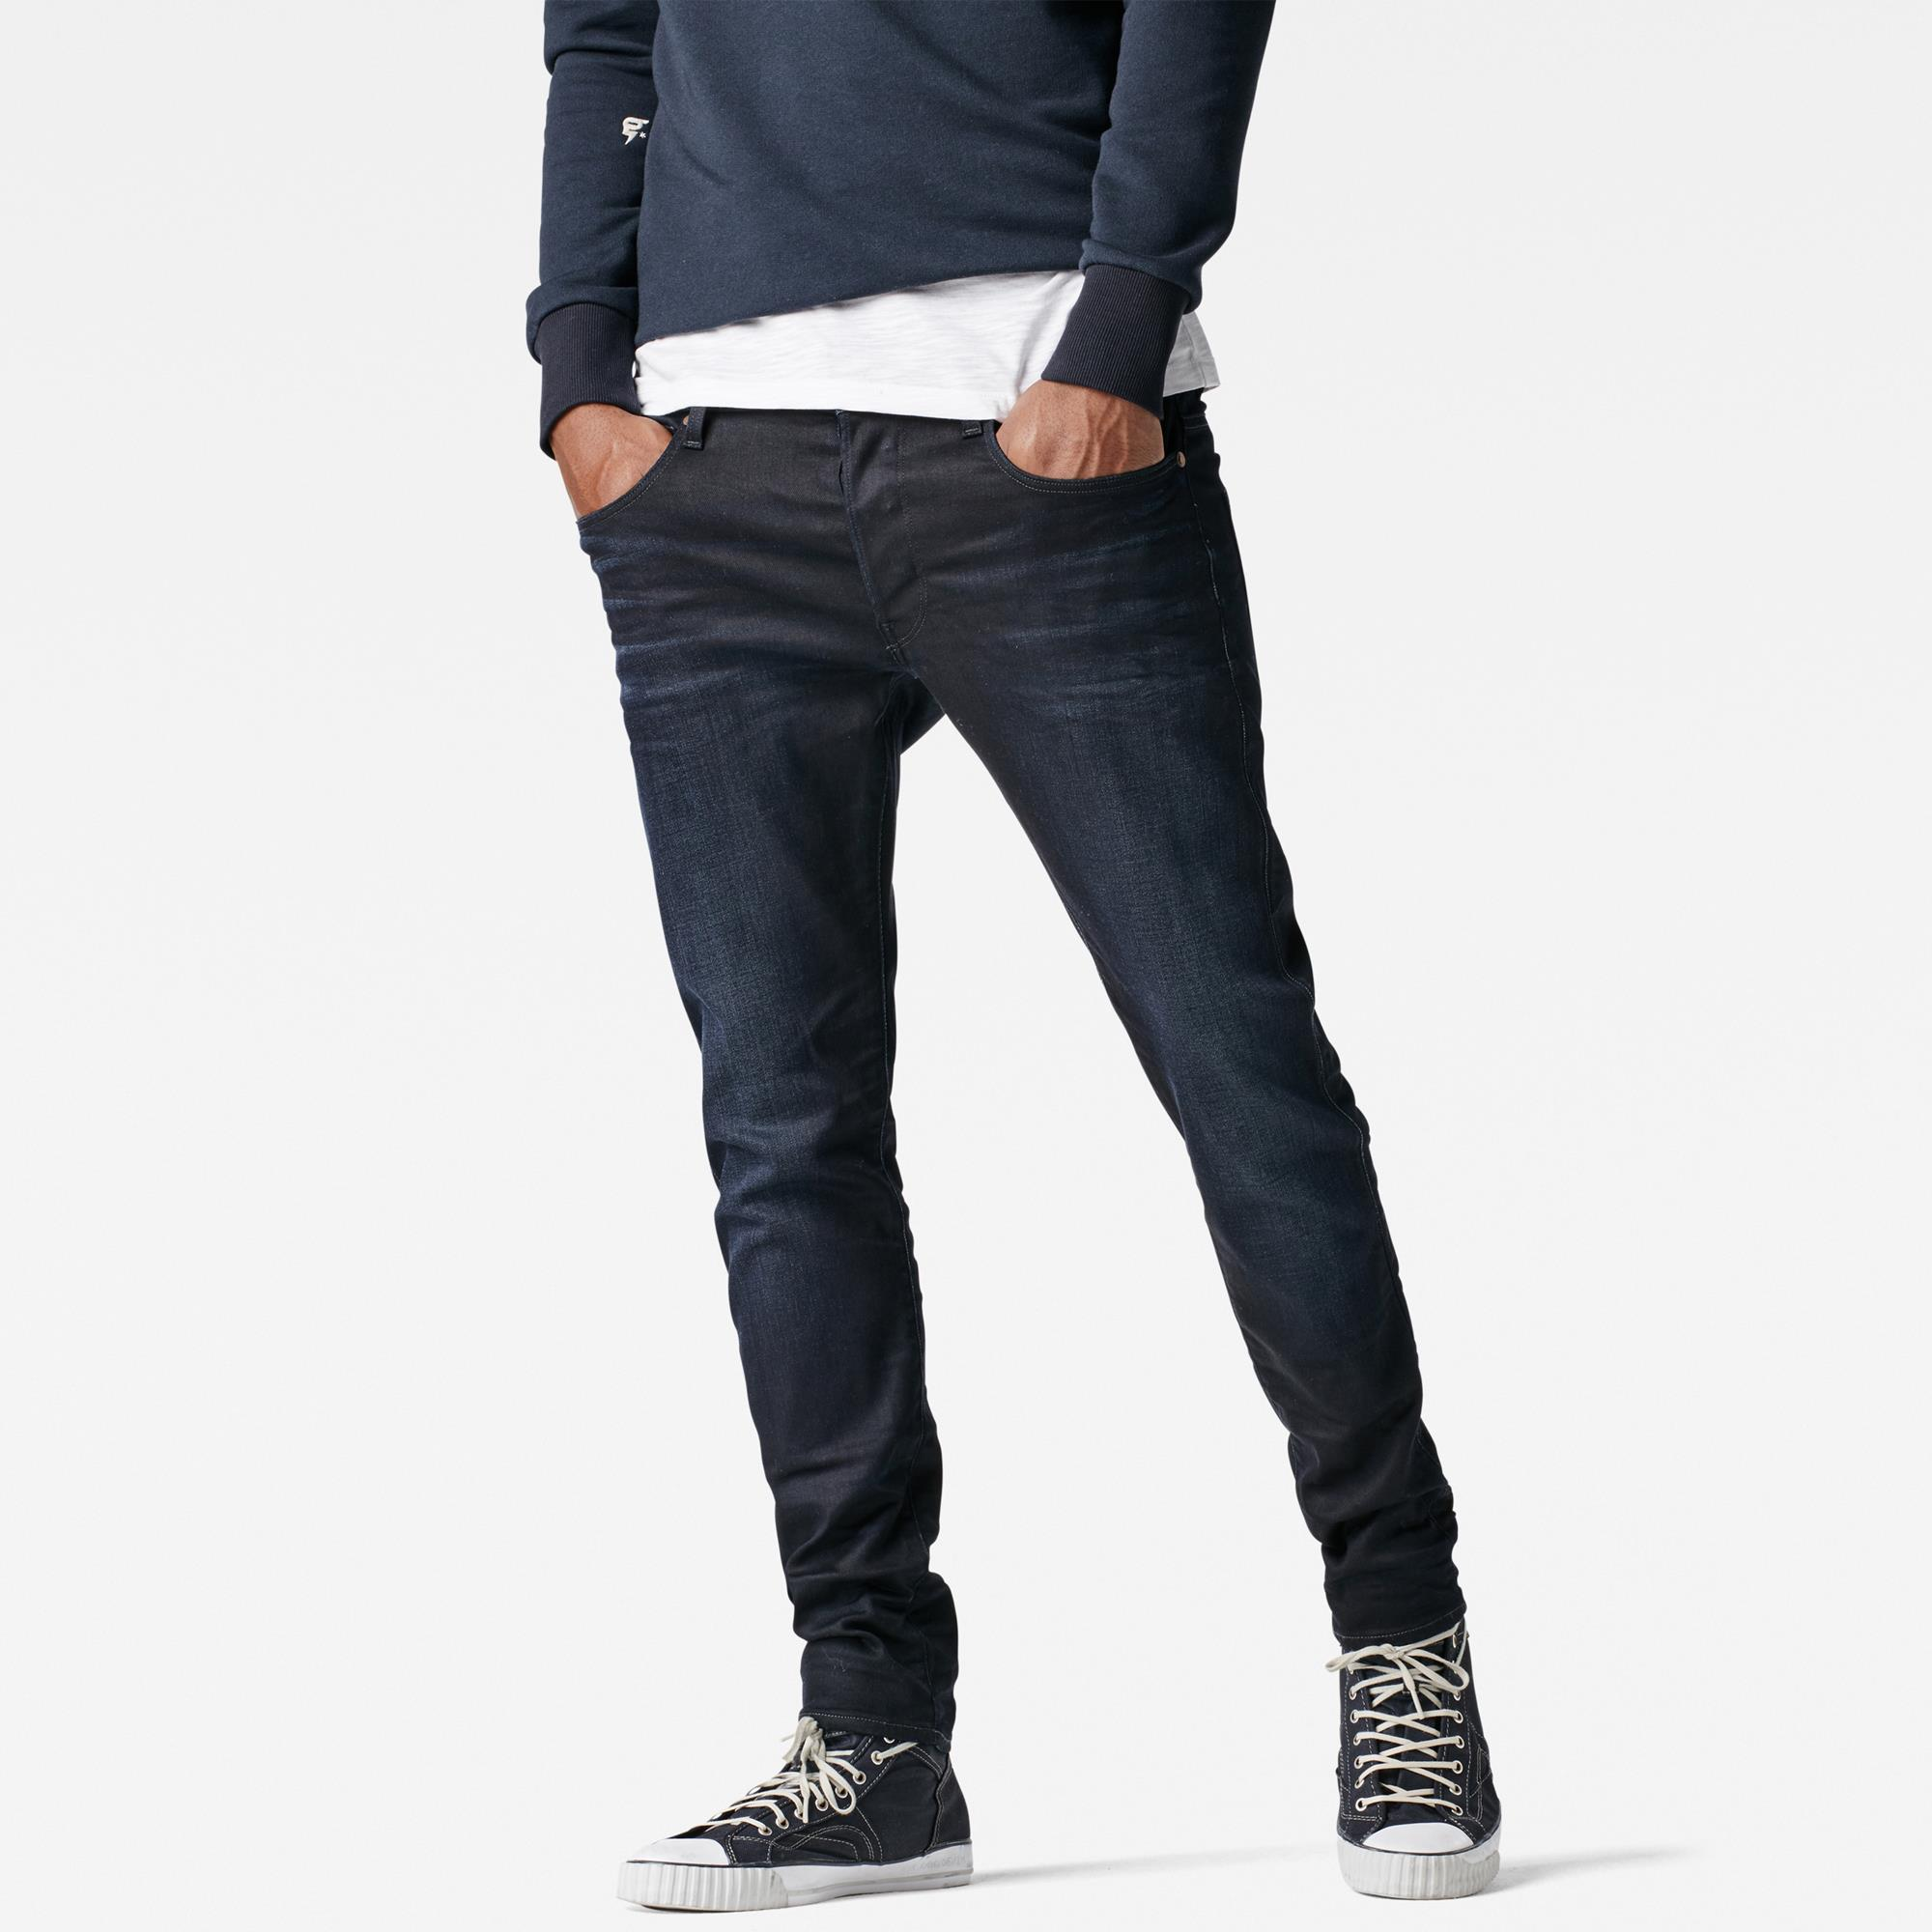 G-Star Raw heren jeans